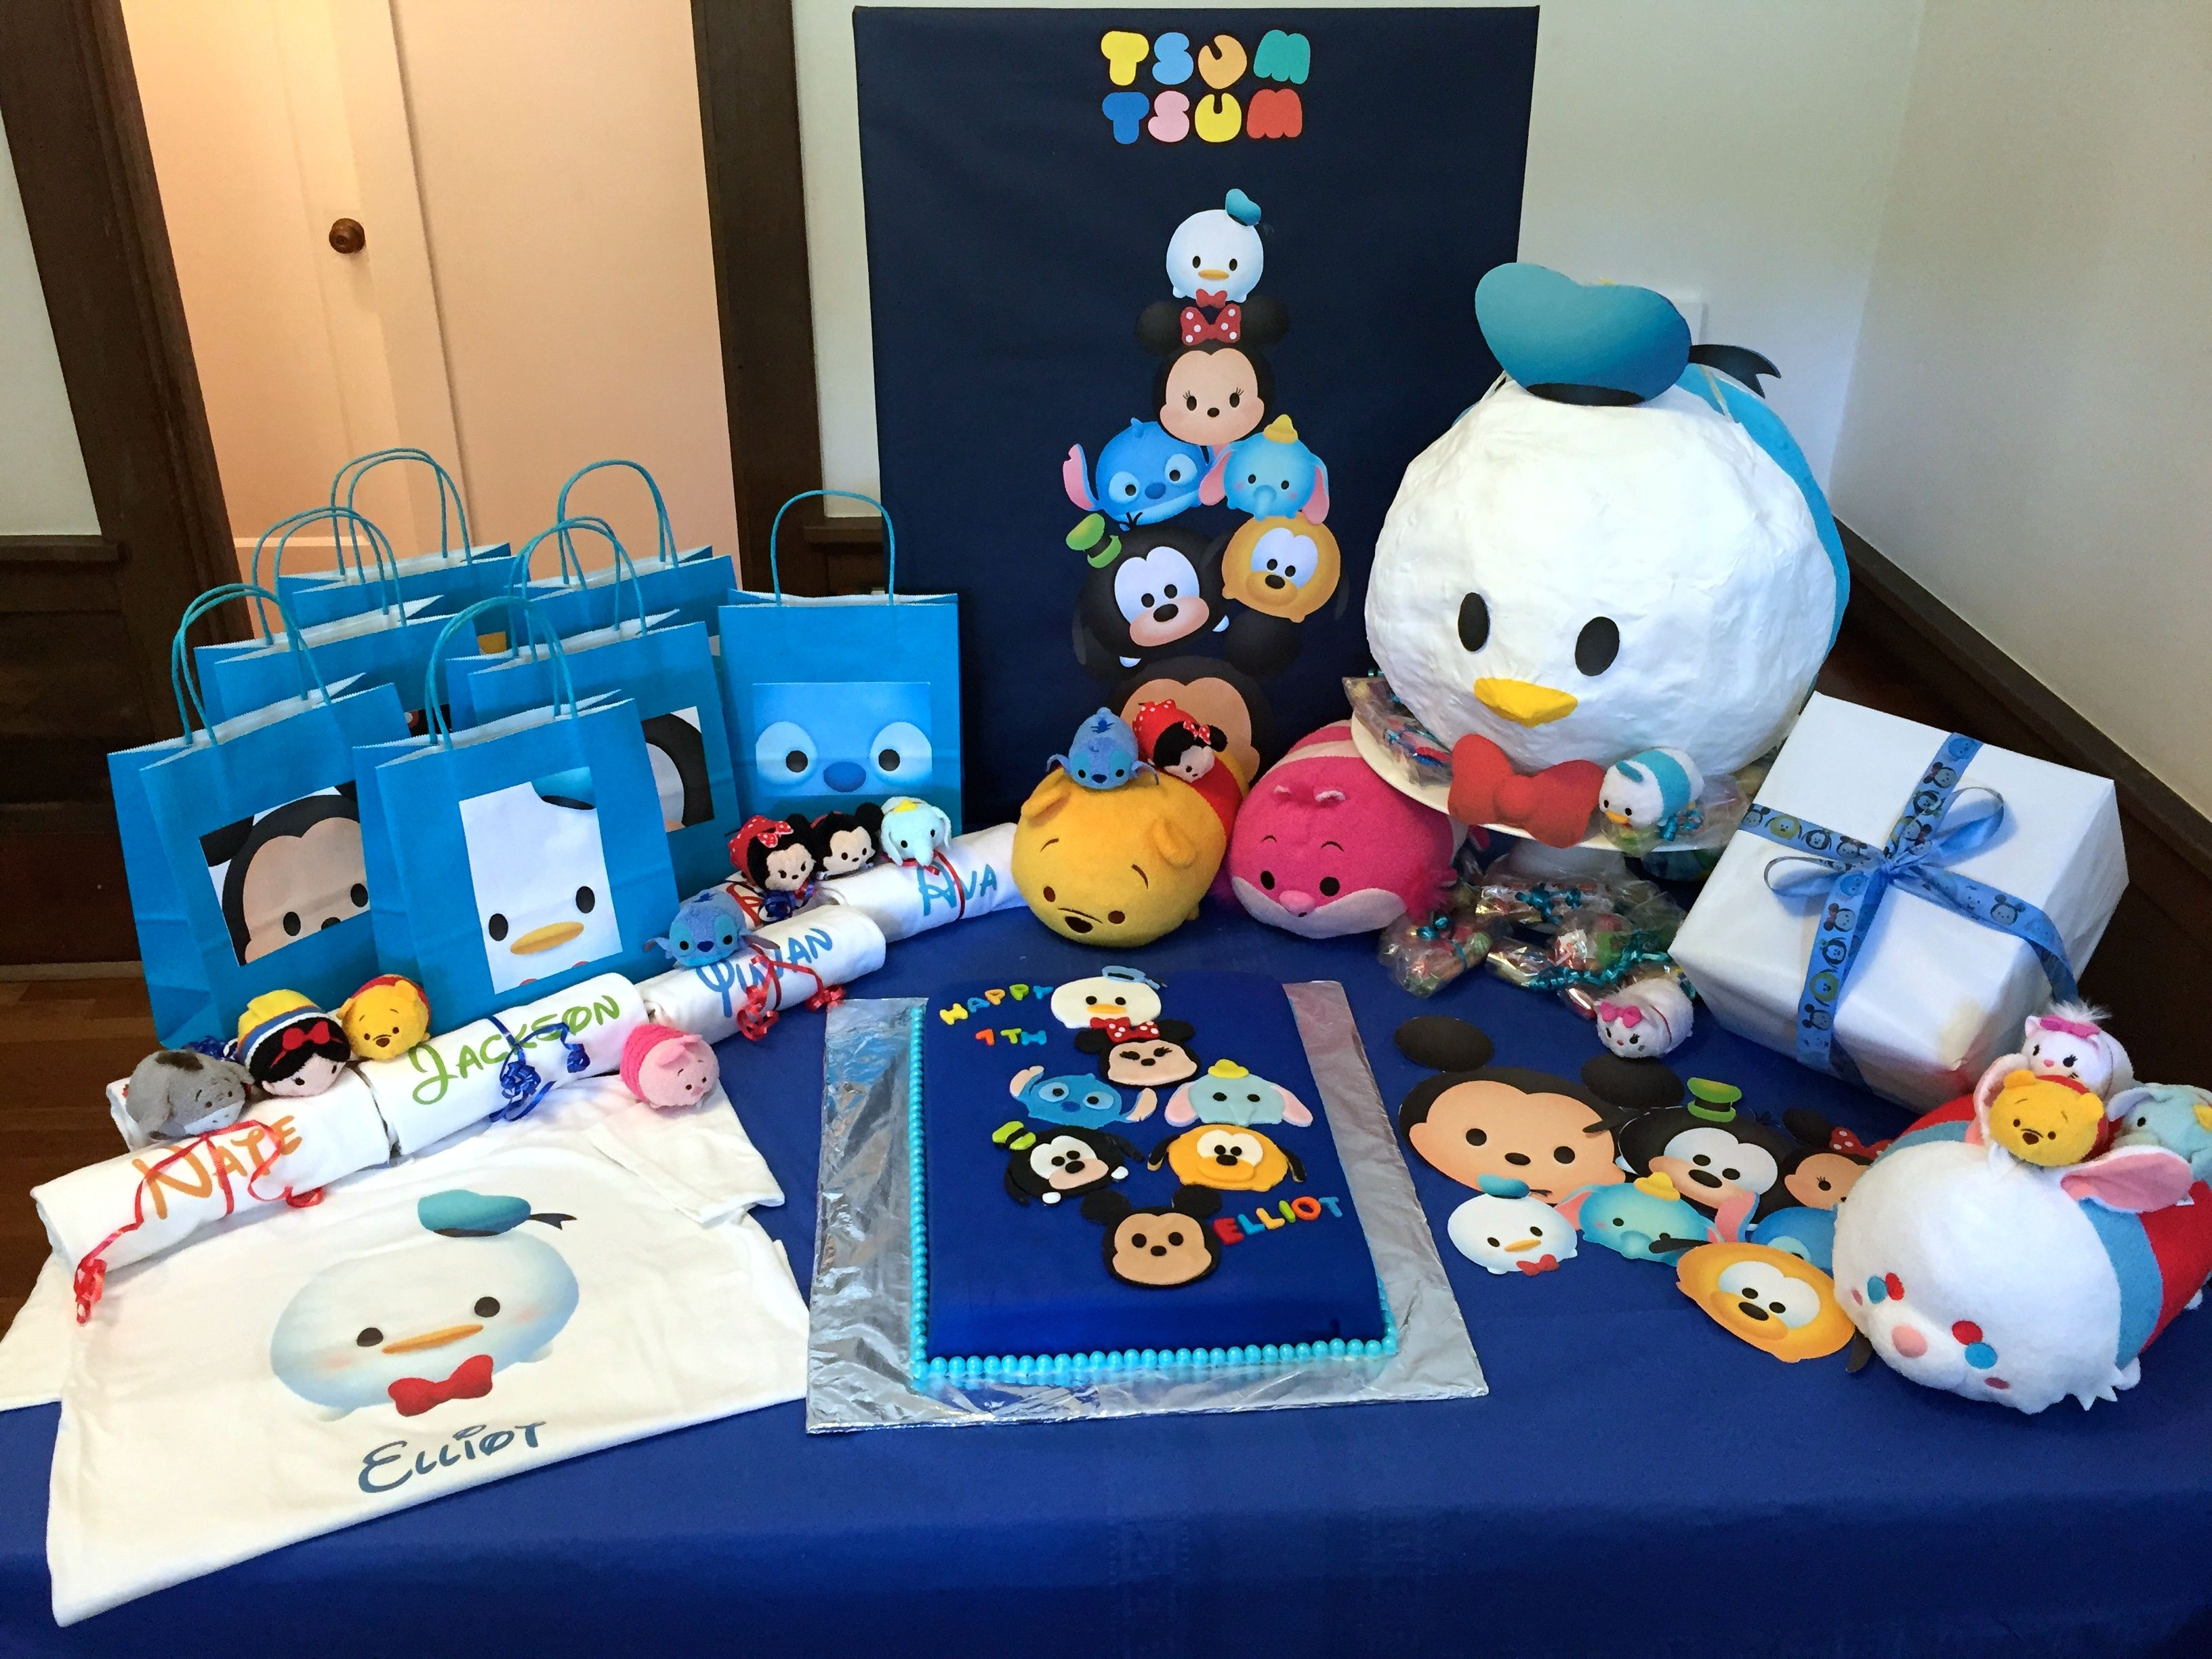 free online birthday invitation creation%0A Making A Tsum Tsum Birthday Party